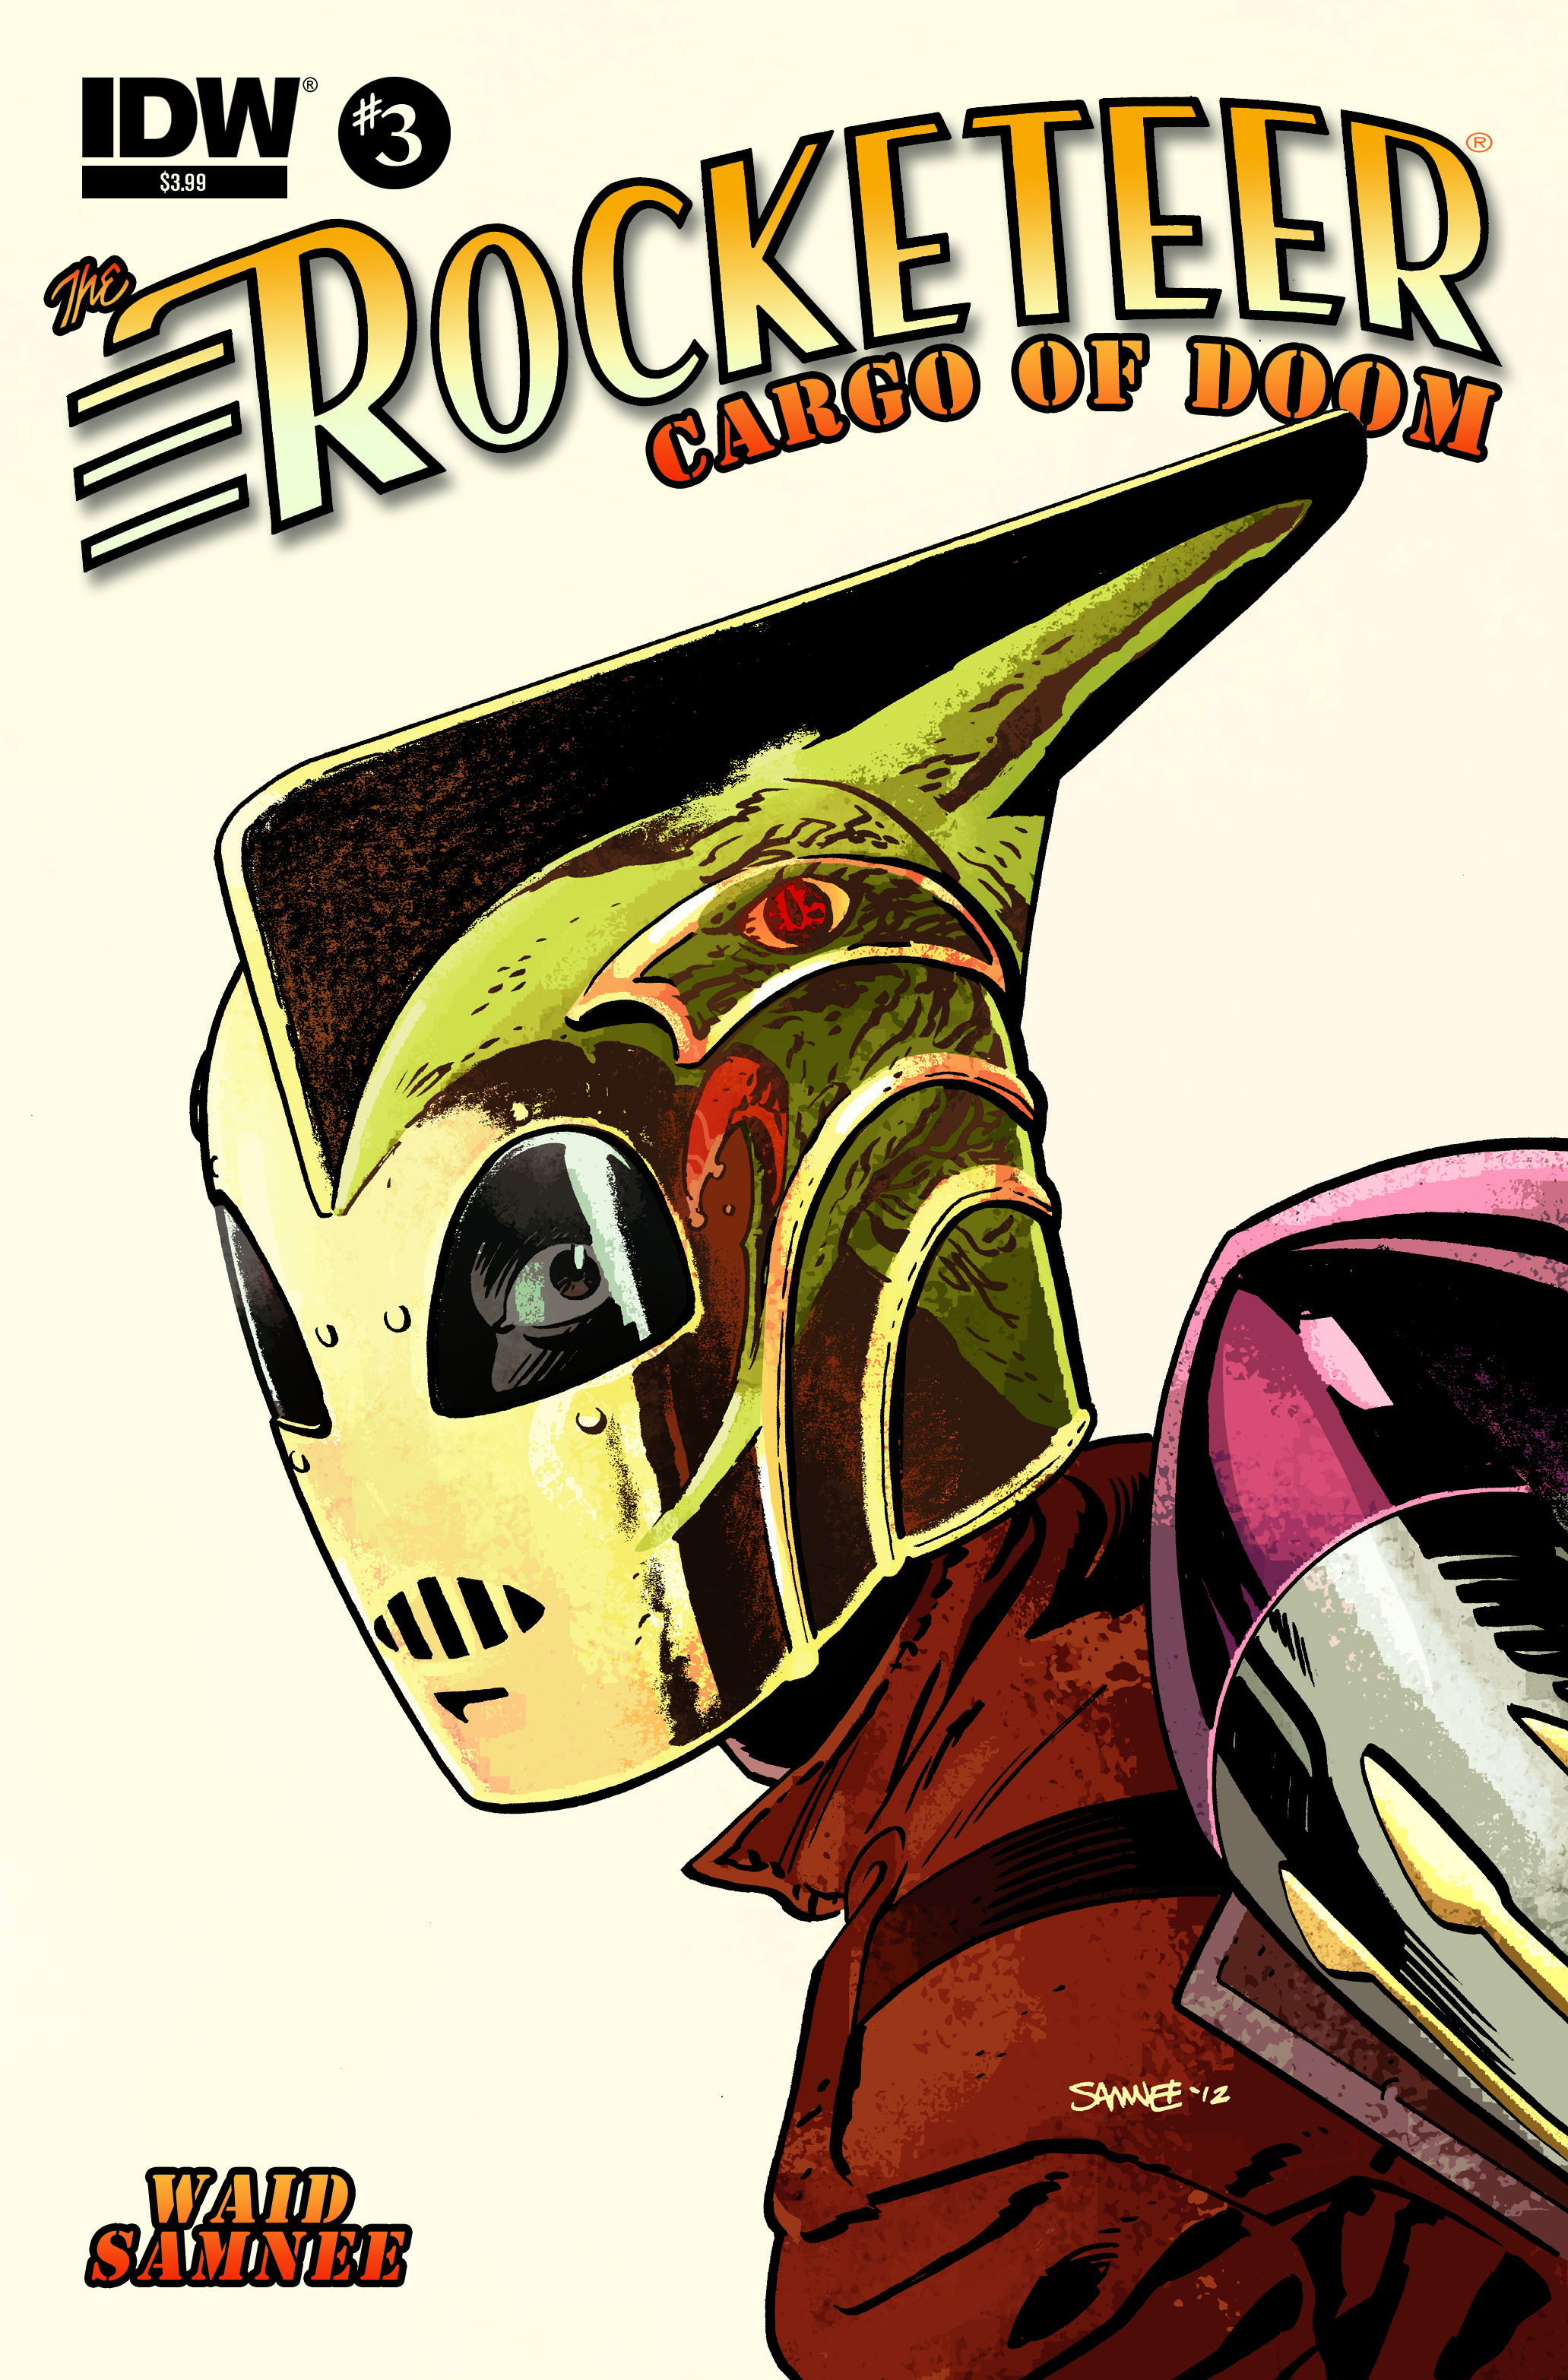 The Rocketeer Cargo of Doom #3